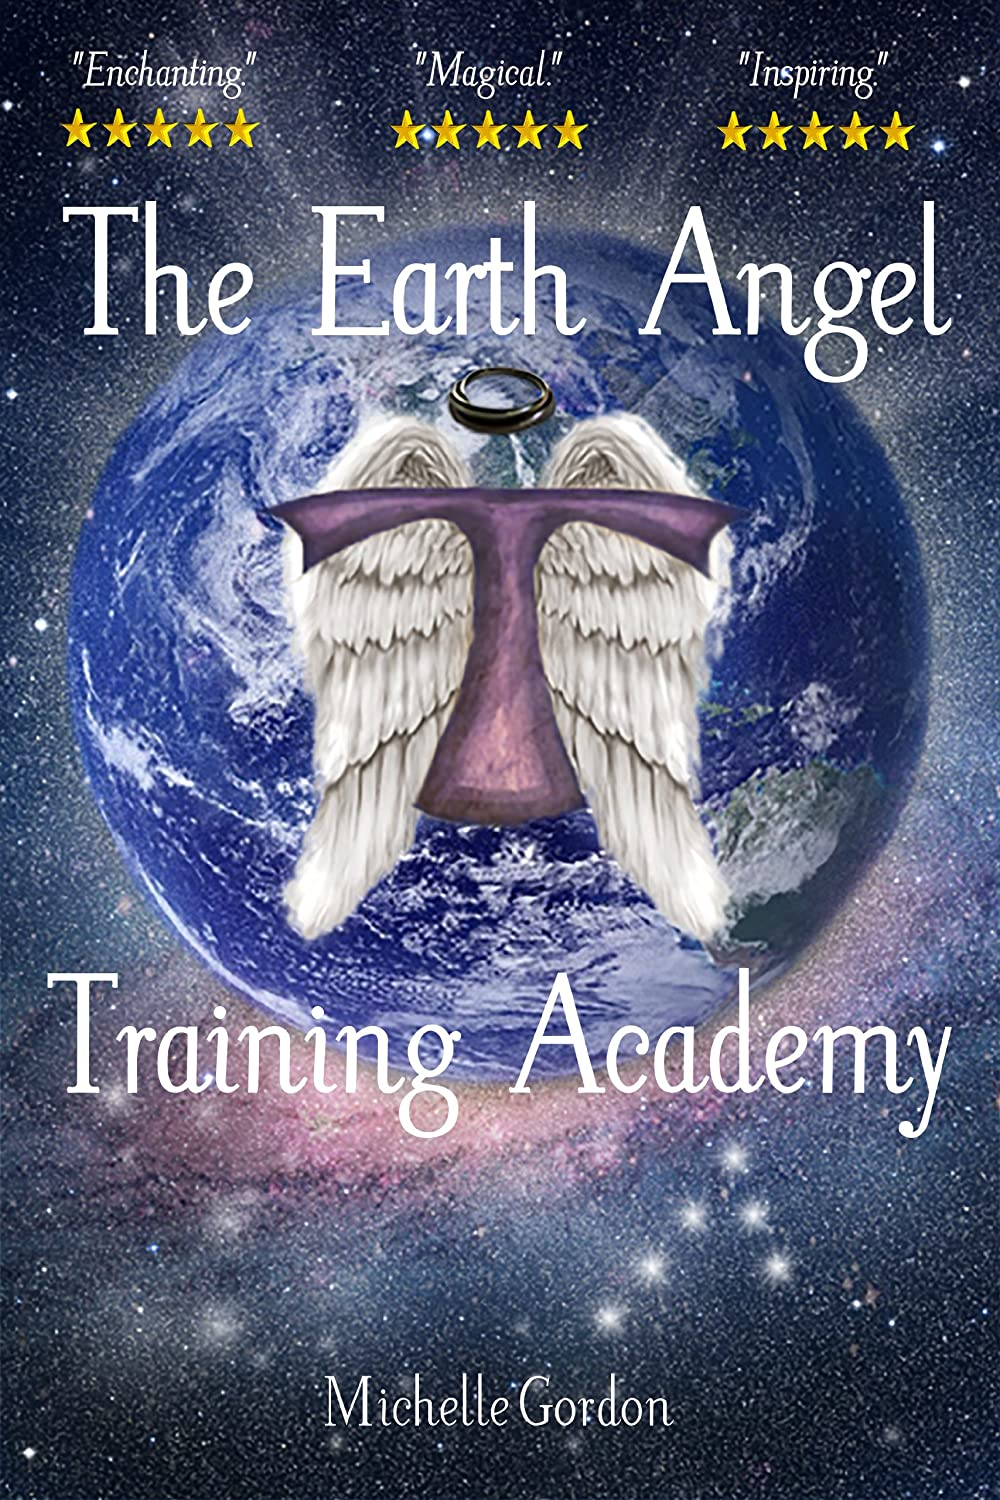 Earth Angel Training Academy Book Trailer by Michelle Gordon